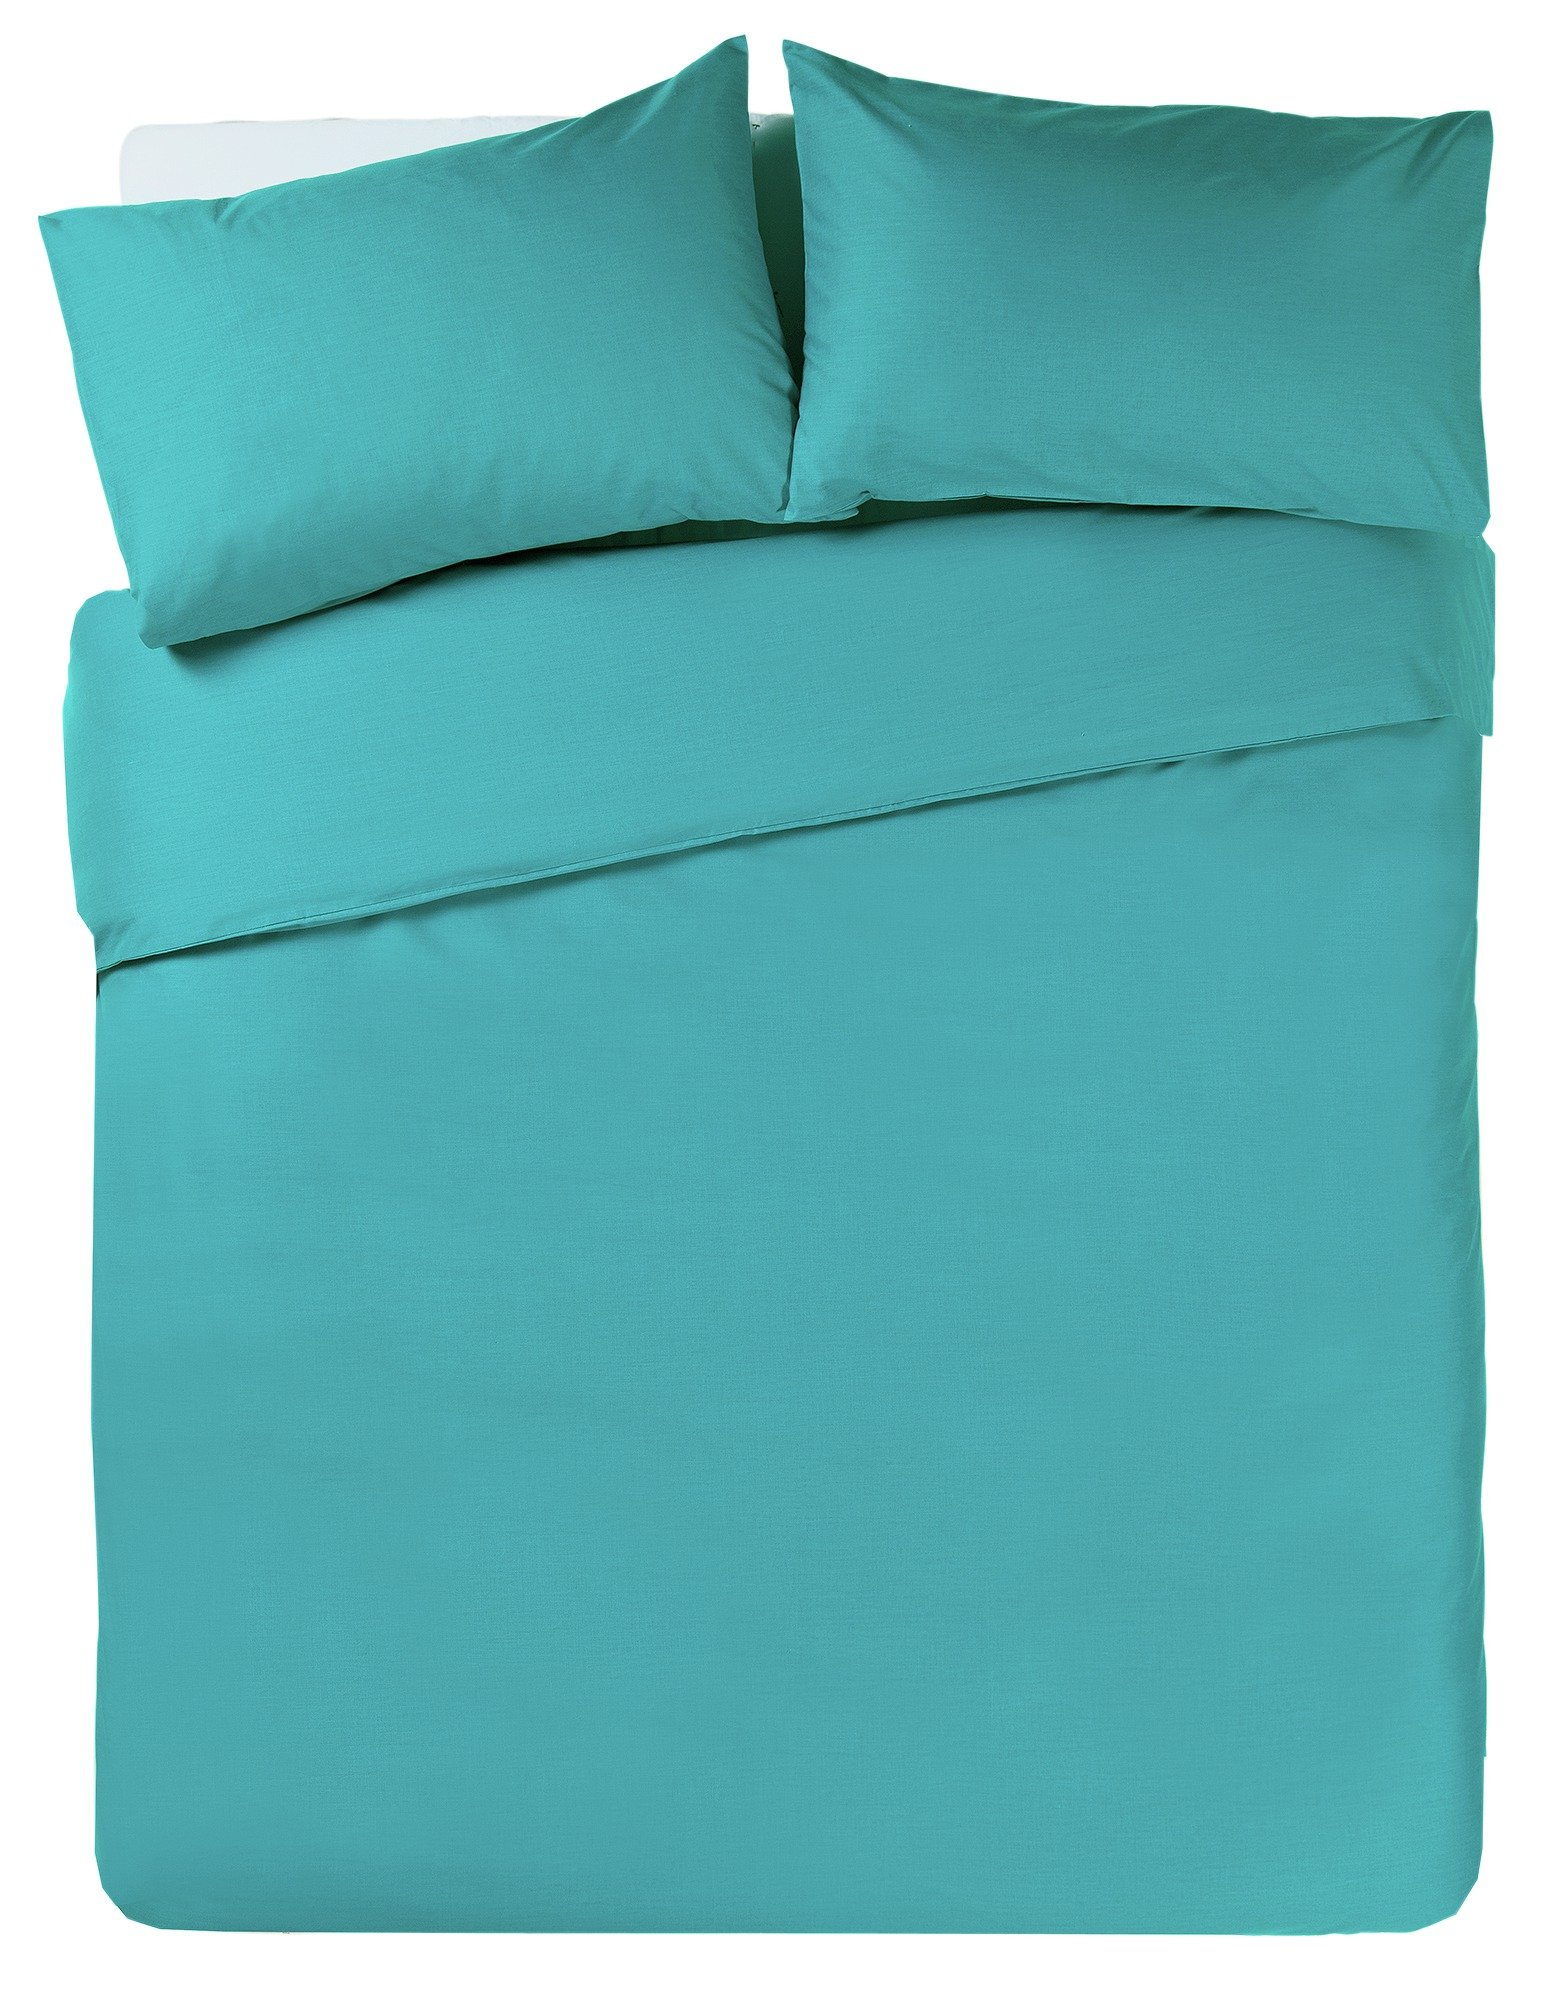 colourmatch teal bedding set  double